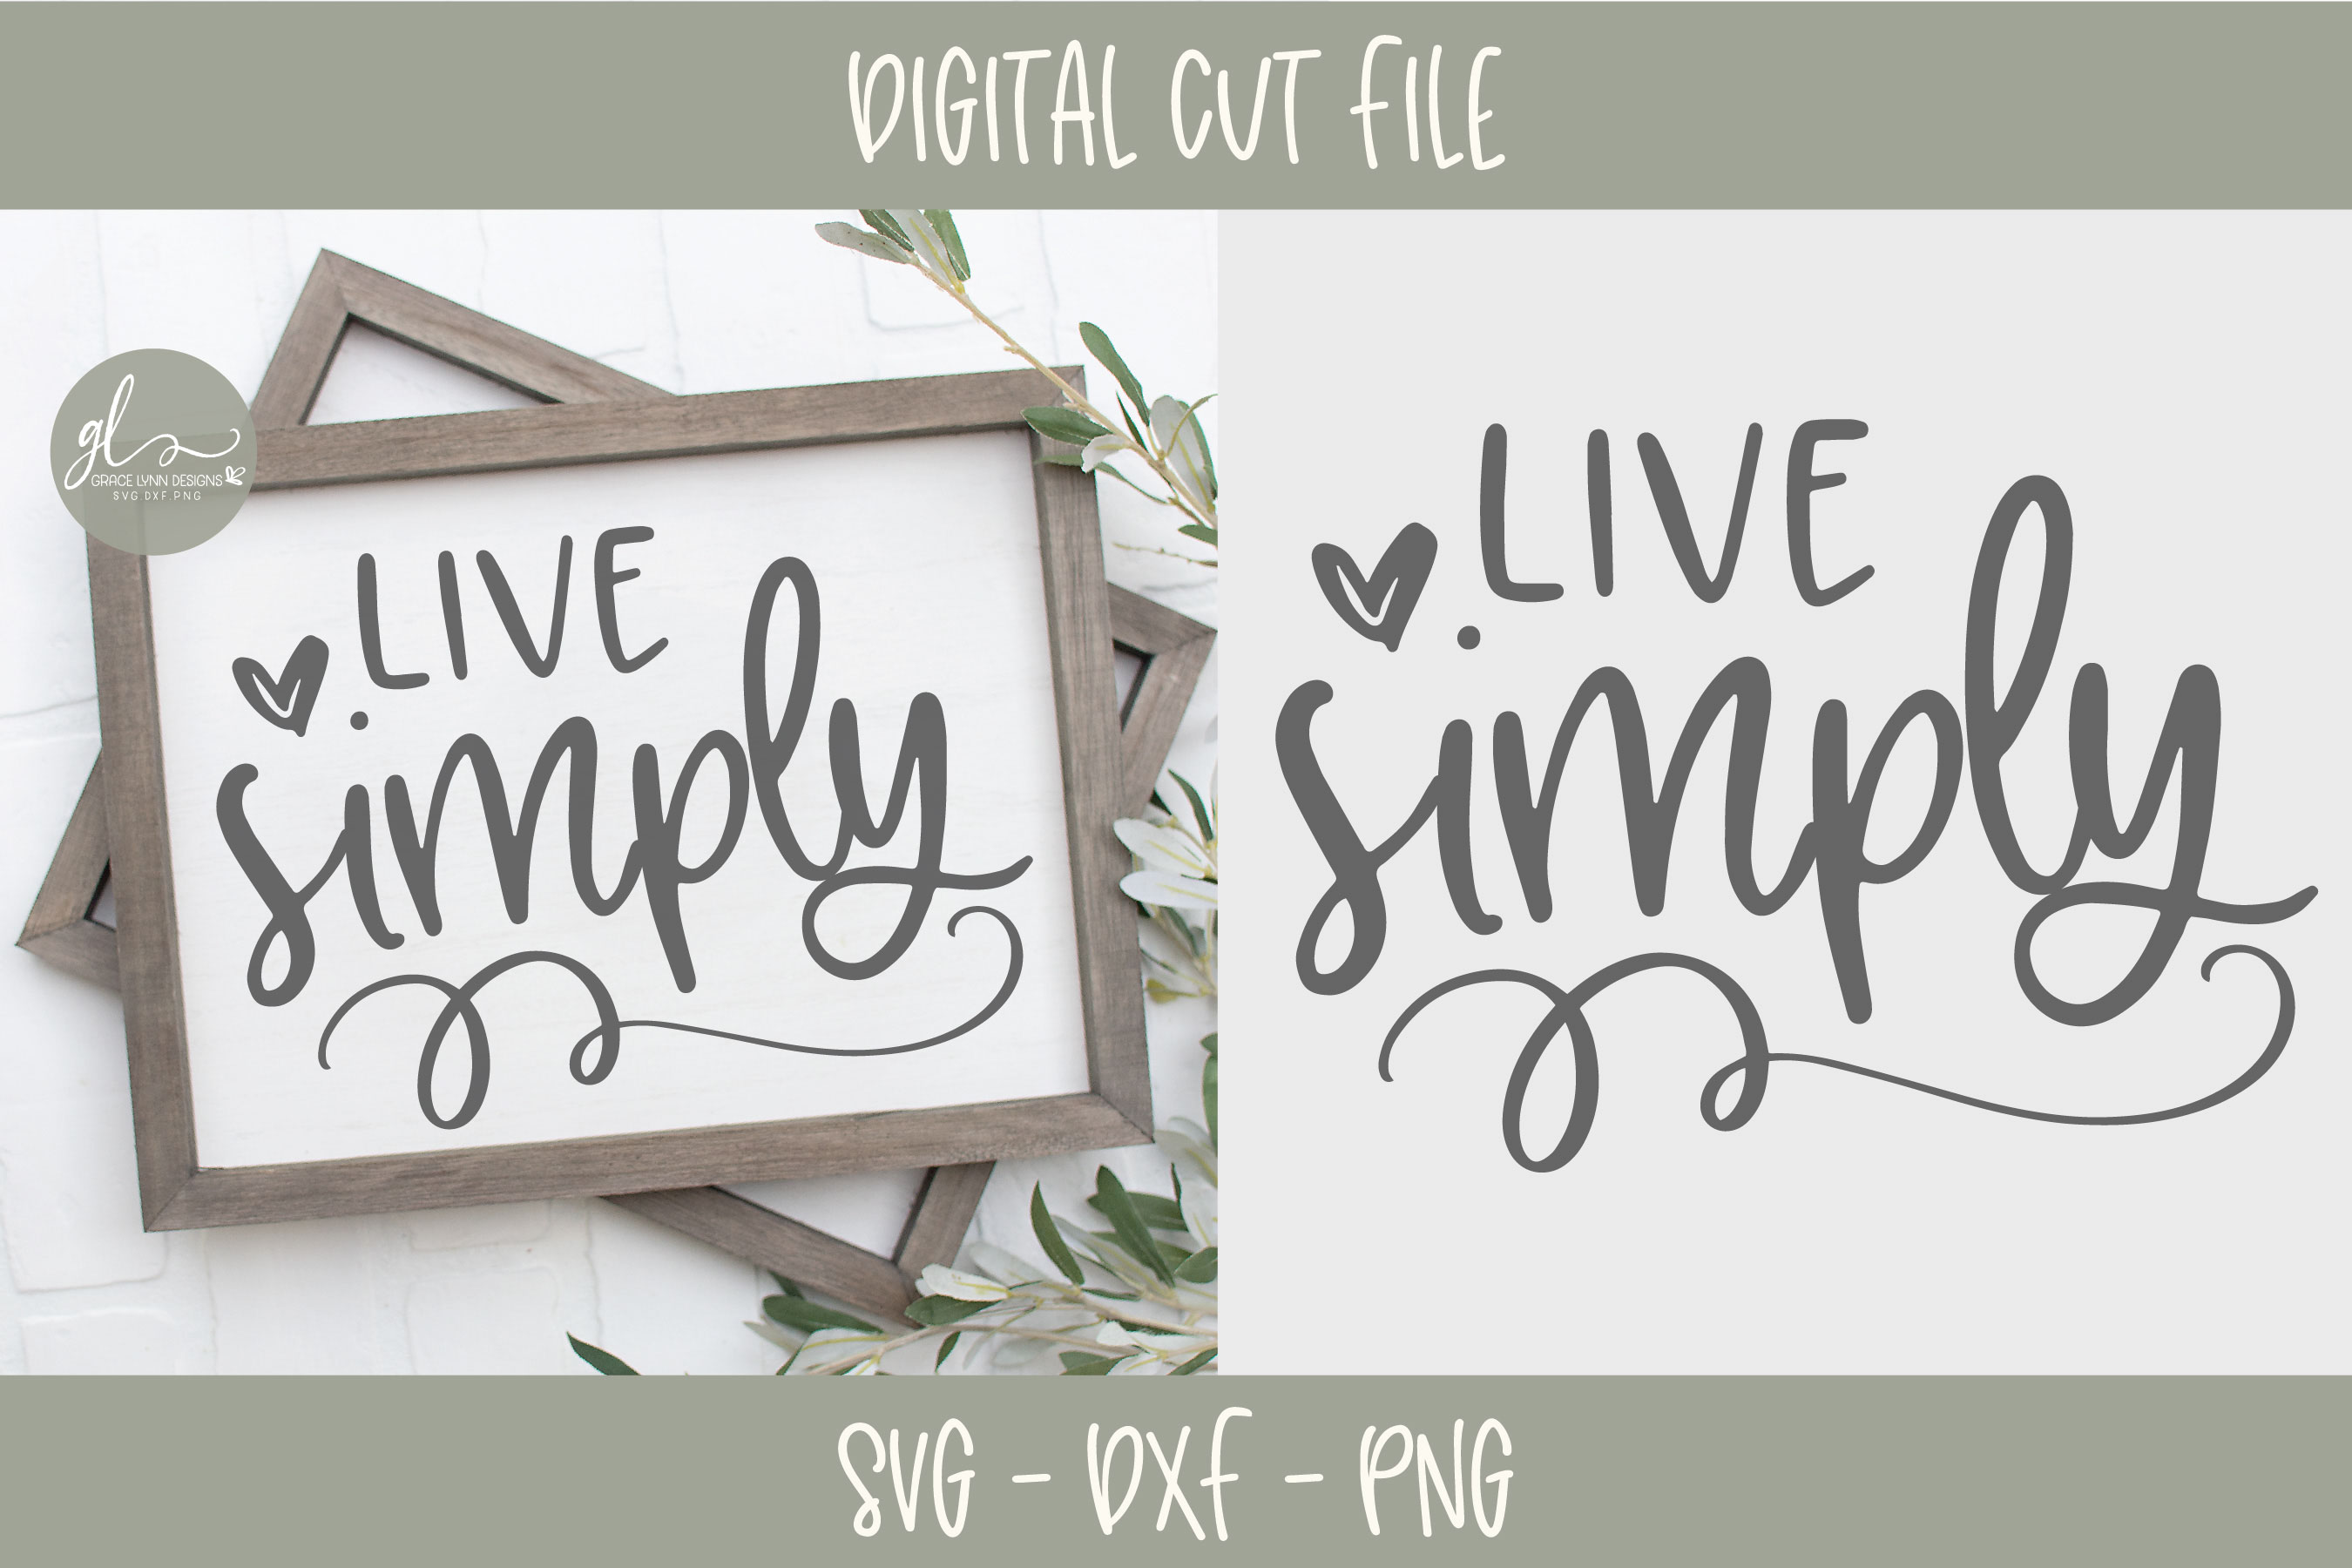 Live Simply - Digital Cut File - SVG, DXF & PNG example image 1